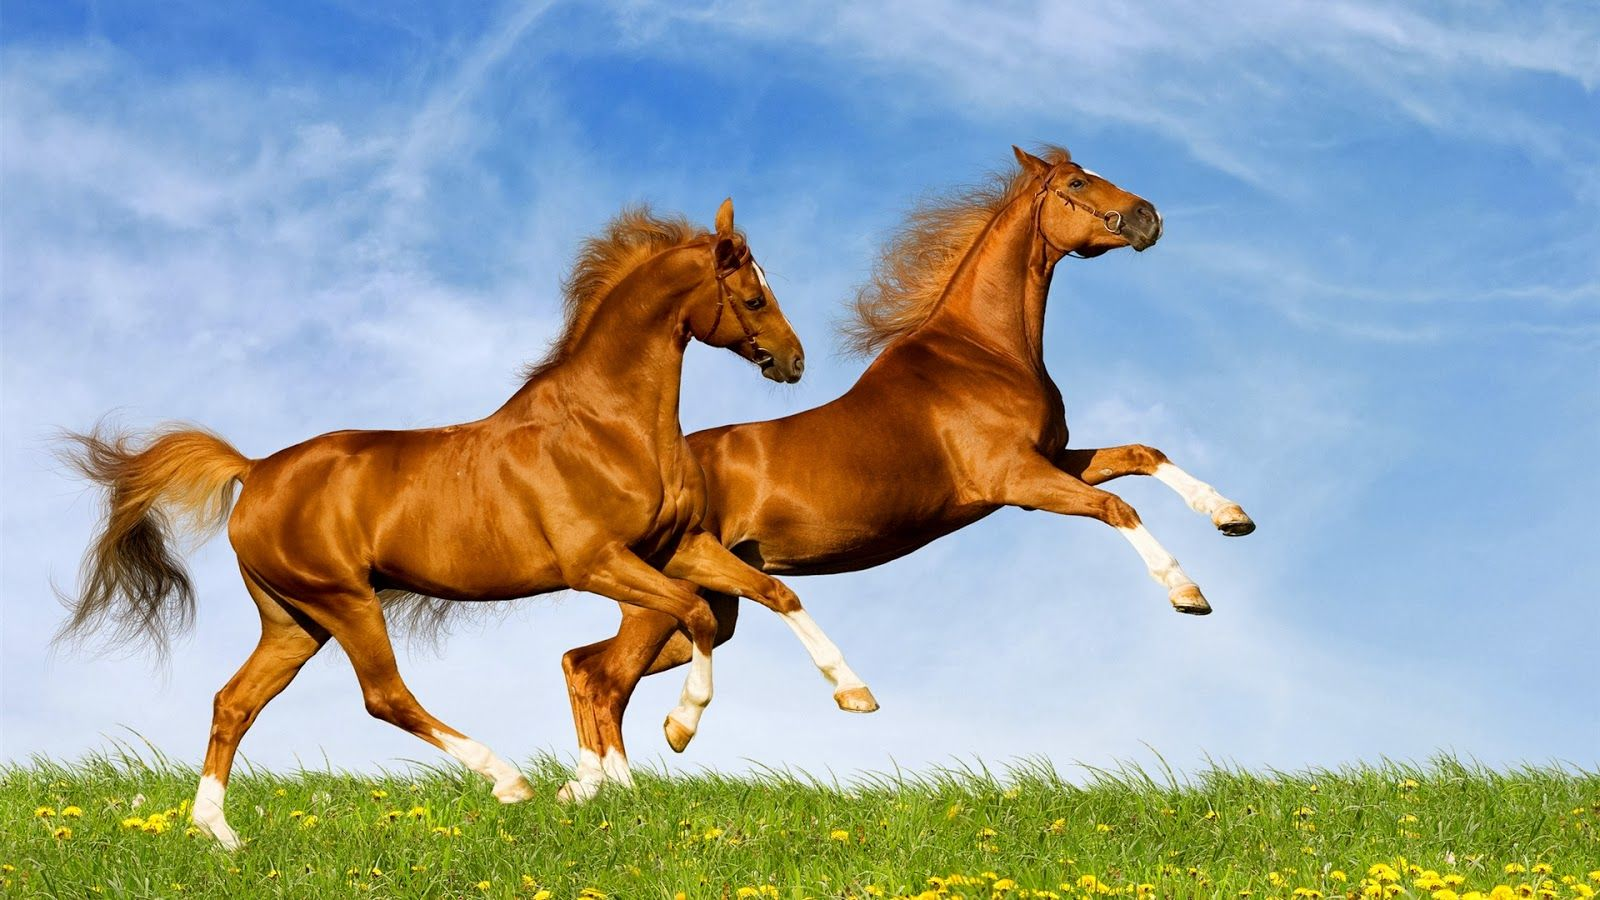 Horse Wallpaper For Computer Wallpapers Desktop Horse Free And Make This Hd Wallpapers Desktop